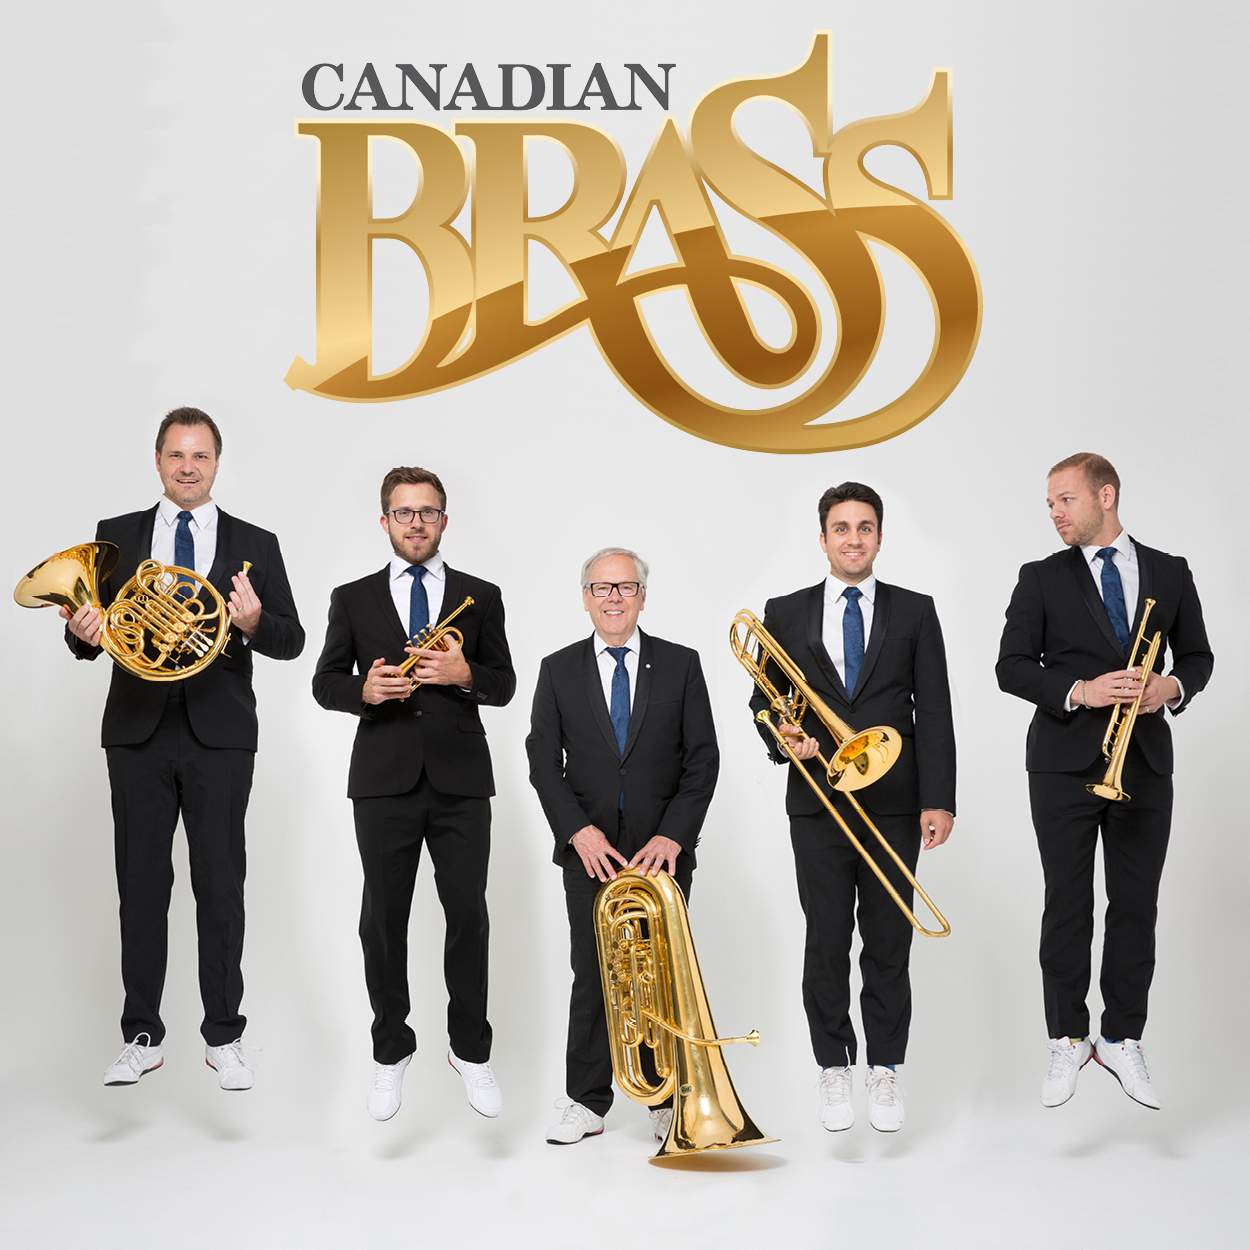 Canadian Brass – A FREE EVENT PRESENTED BY BEACHES FINE ARTS SERIES